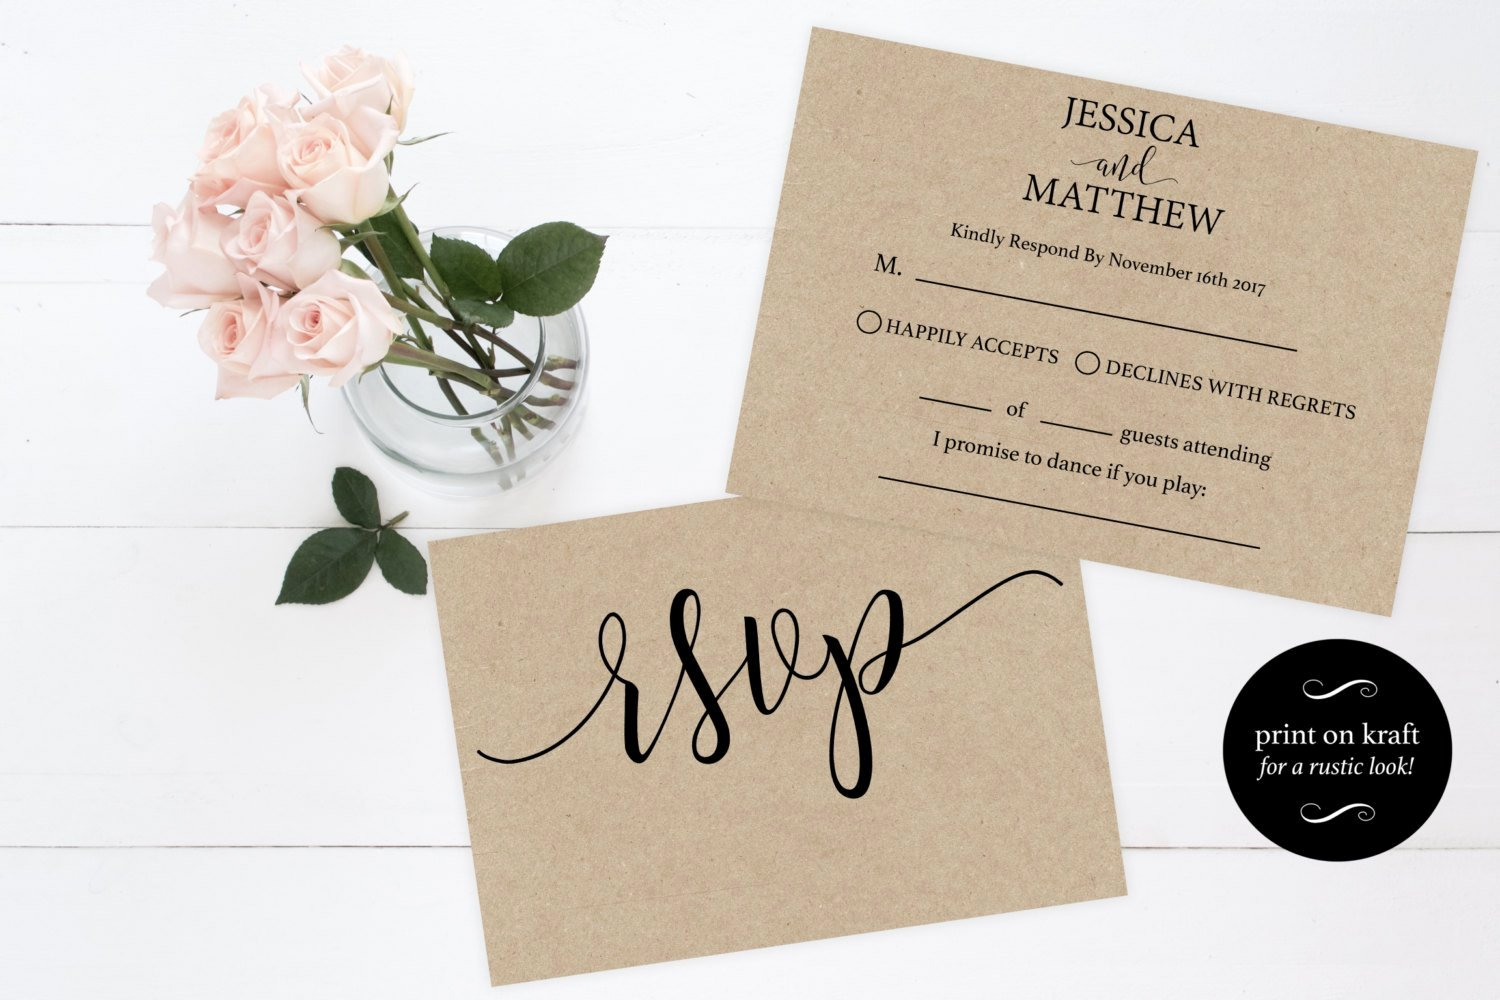 Wedding Rsvp Cards Template Elegant Rsvp Wedding Template Wedding Rsvp Cards Rsvp Online